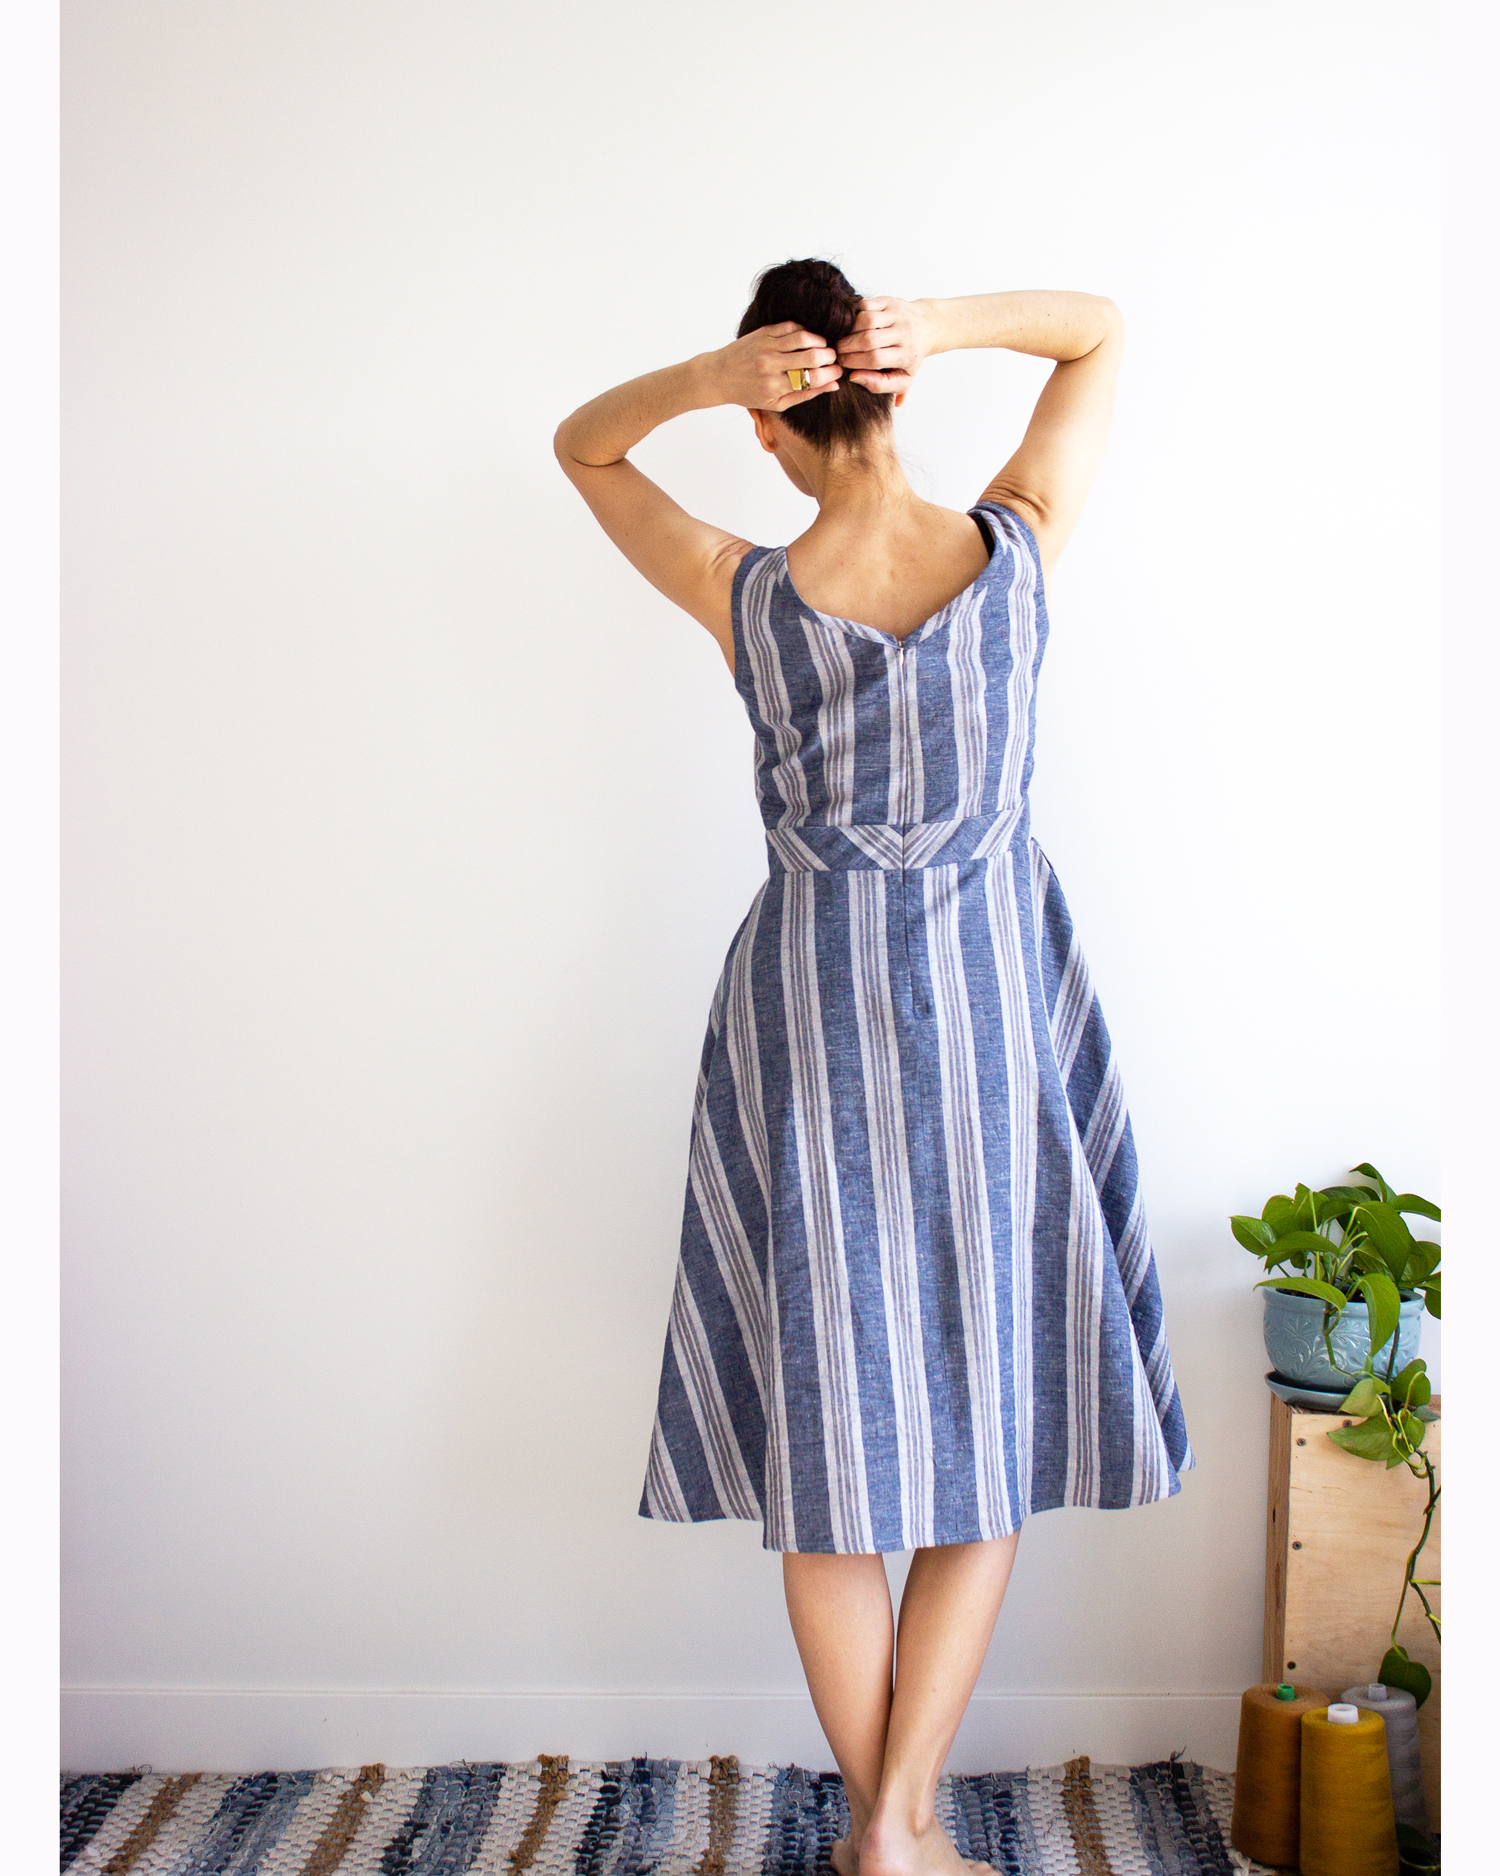 Our organic cotton & hemp  Marilla  dress is  the  frock that will inspire your plans for days at the beach, walks on boardwalks with chilled coffee in hand and dates with someone that makes you feel special.